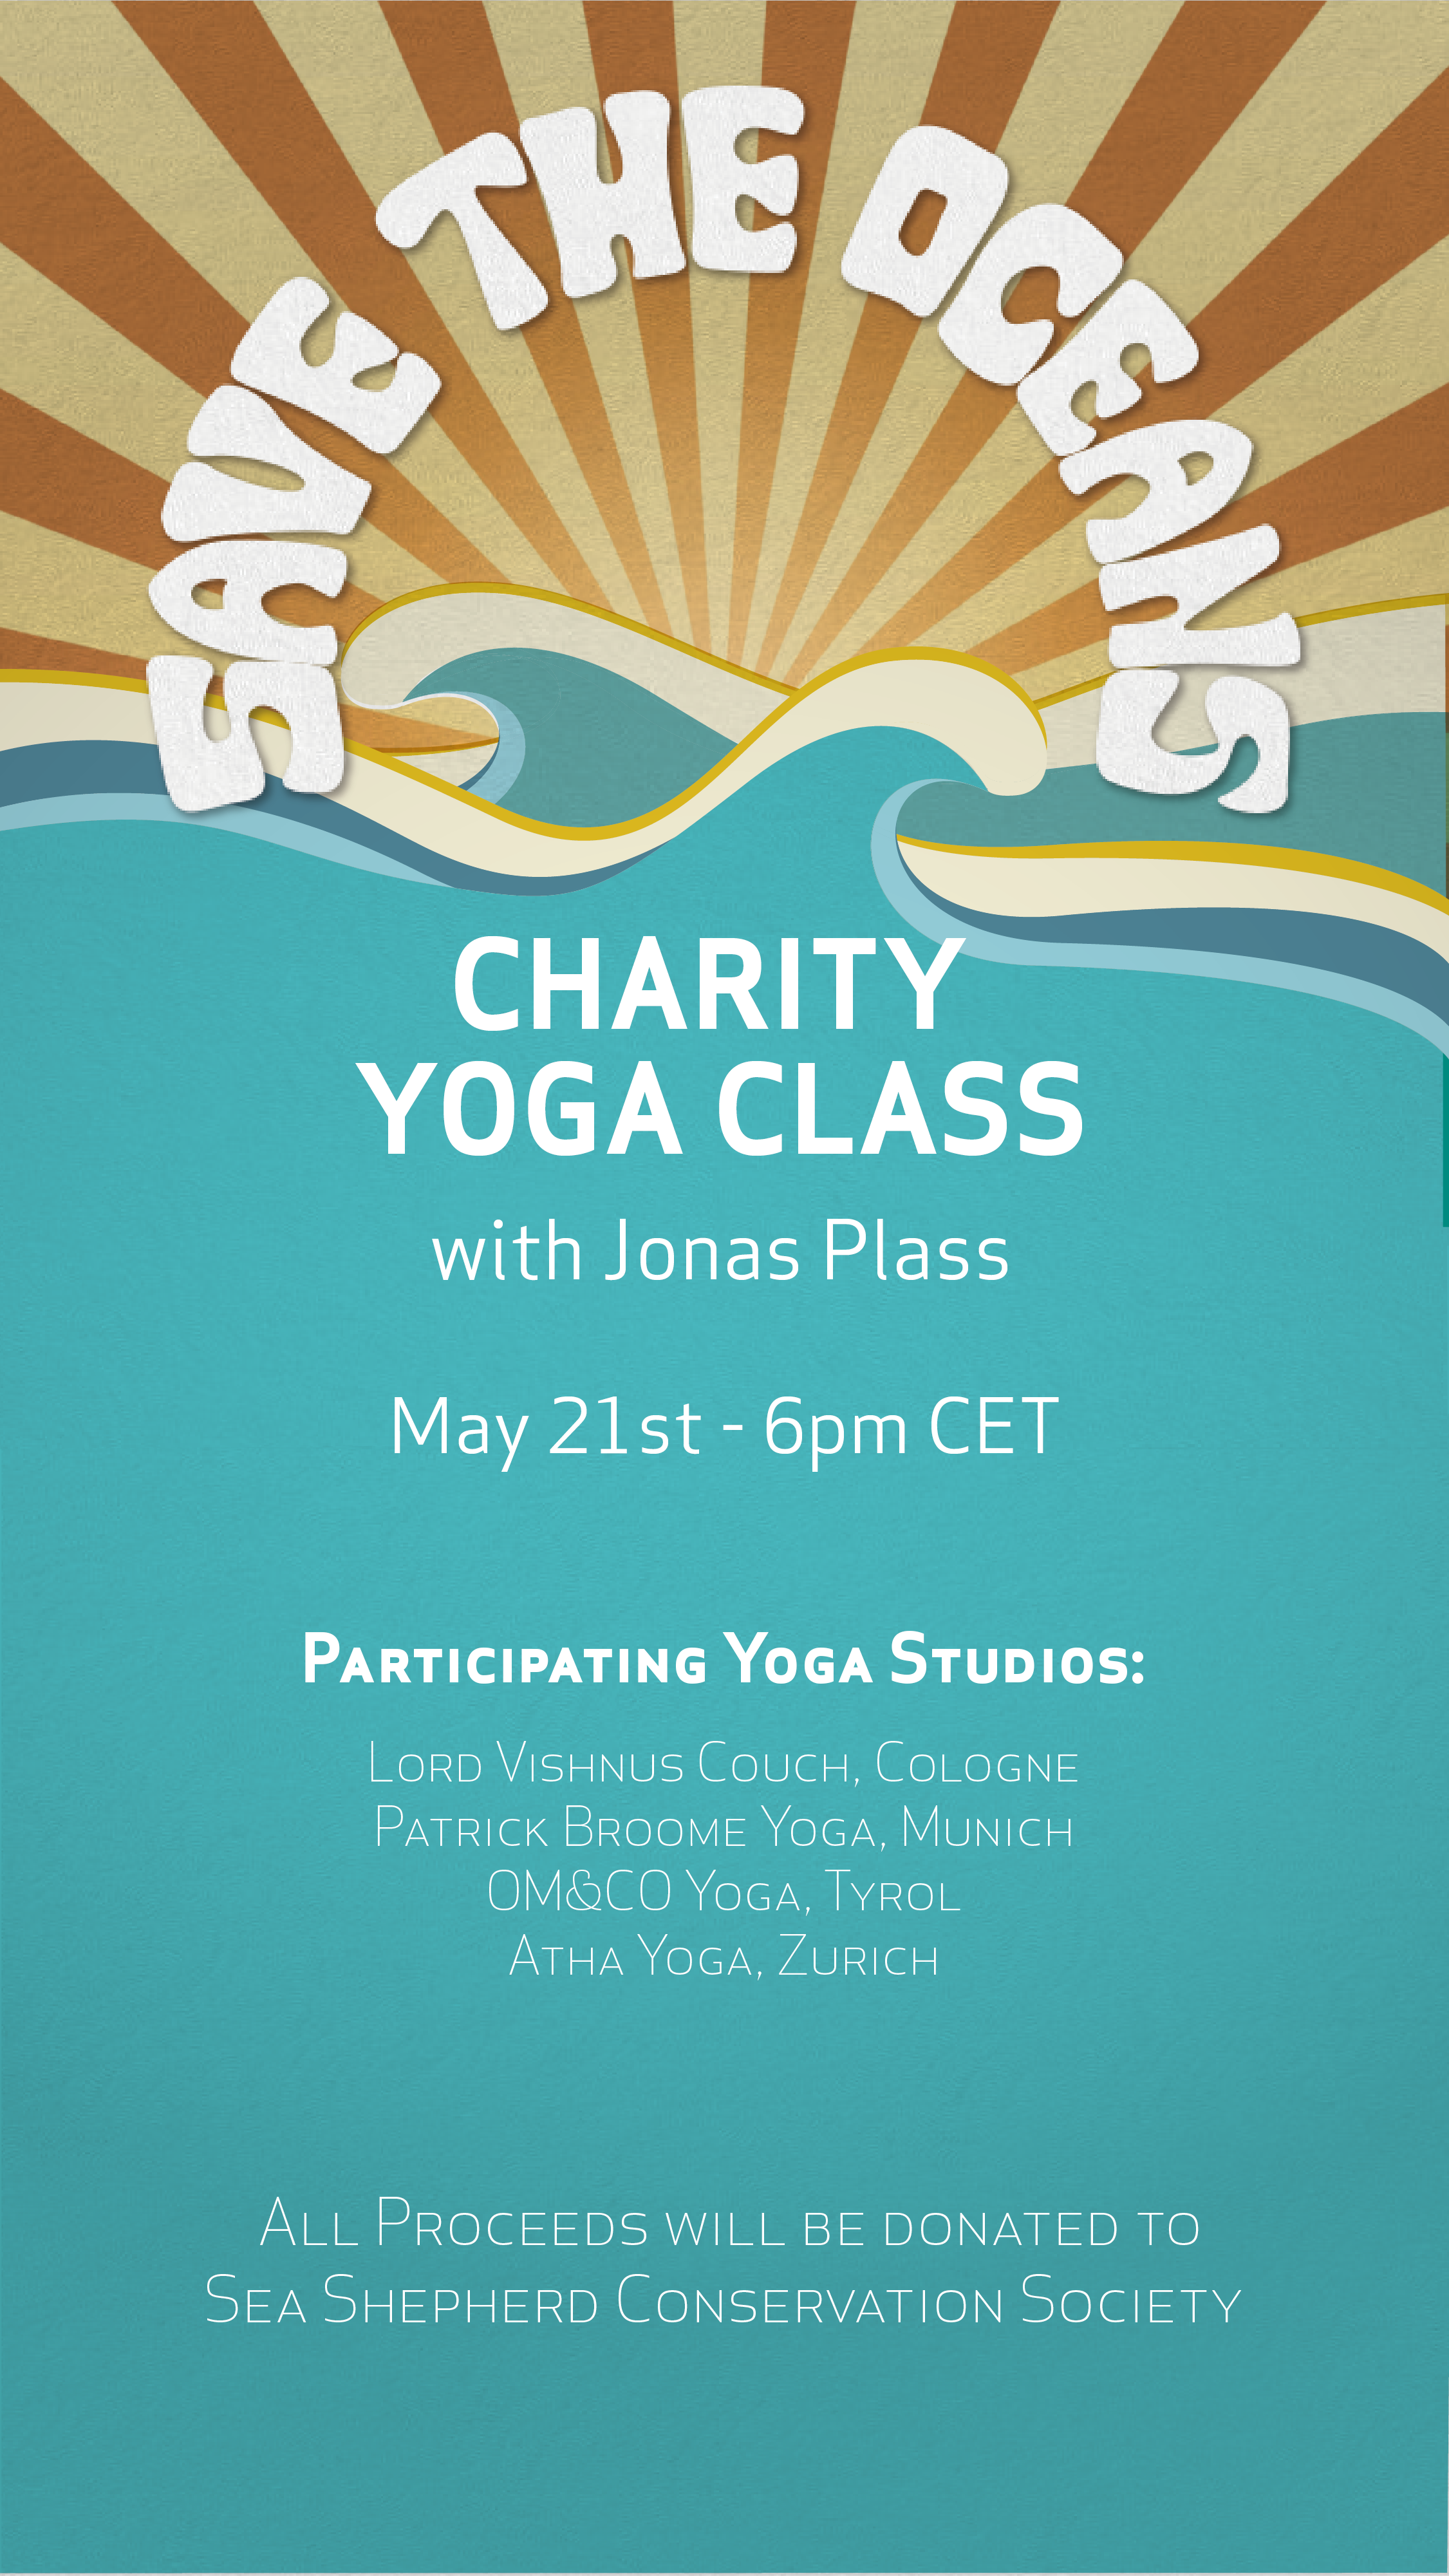 Save the Oceans - Charity Yoga Class mit Jonas Plass